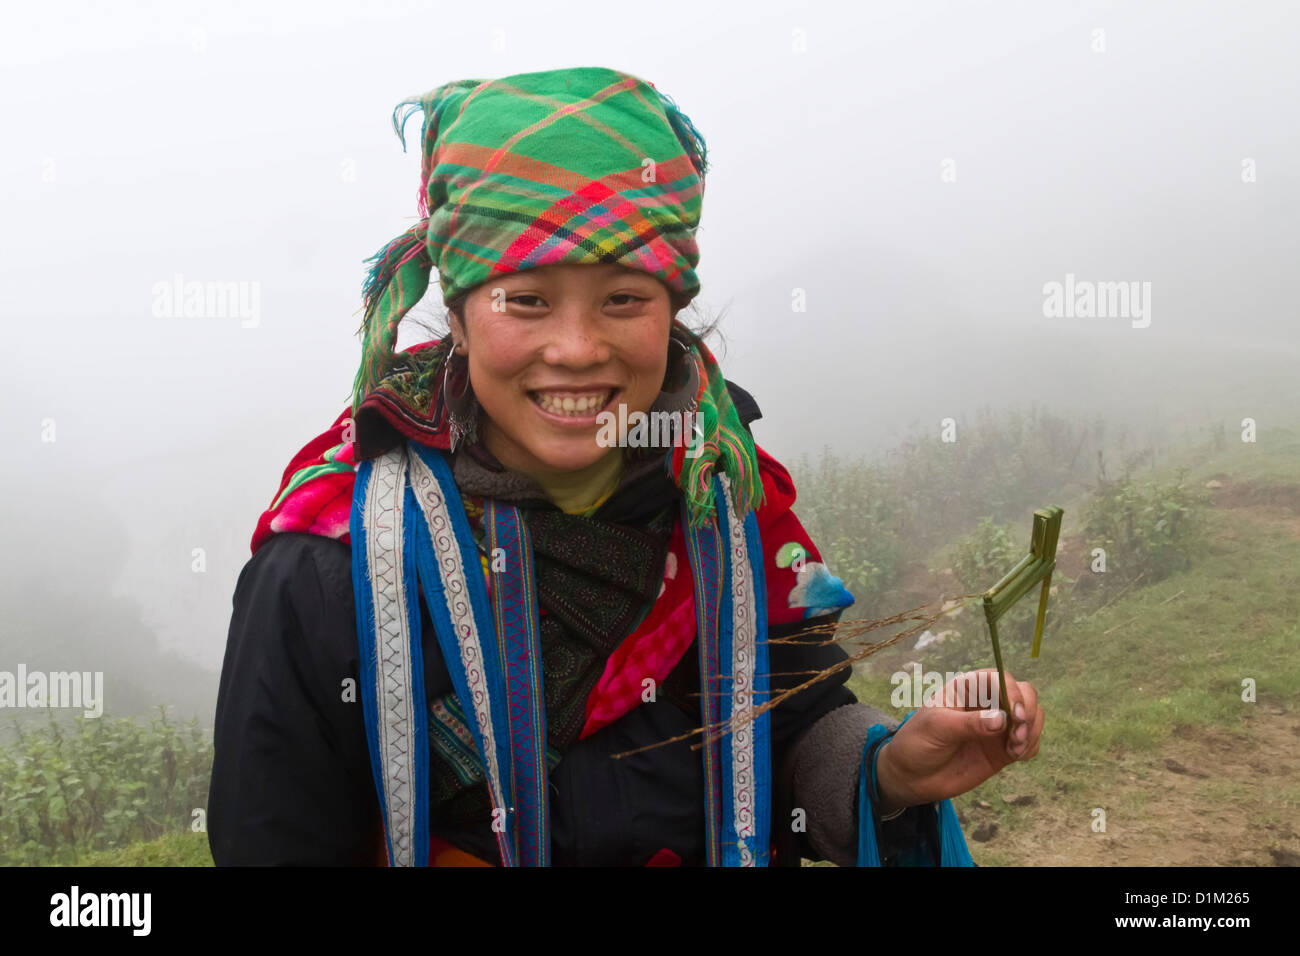 Hmong woman with grass sculpture of a horse, in winter clouds in Sapa, near China border in Vietnam. - Stock Image